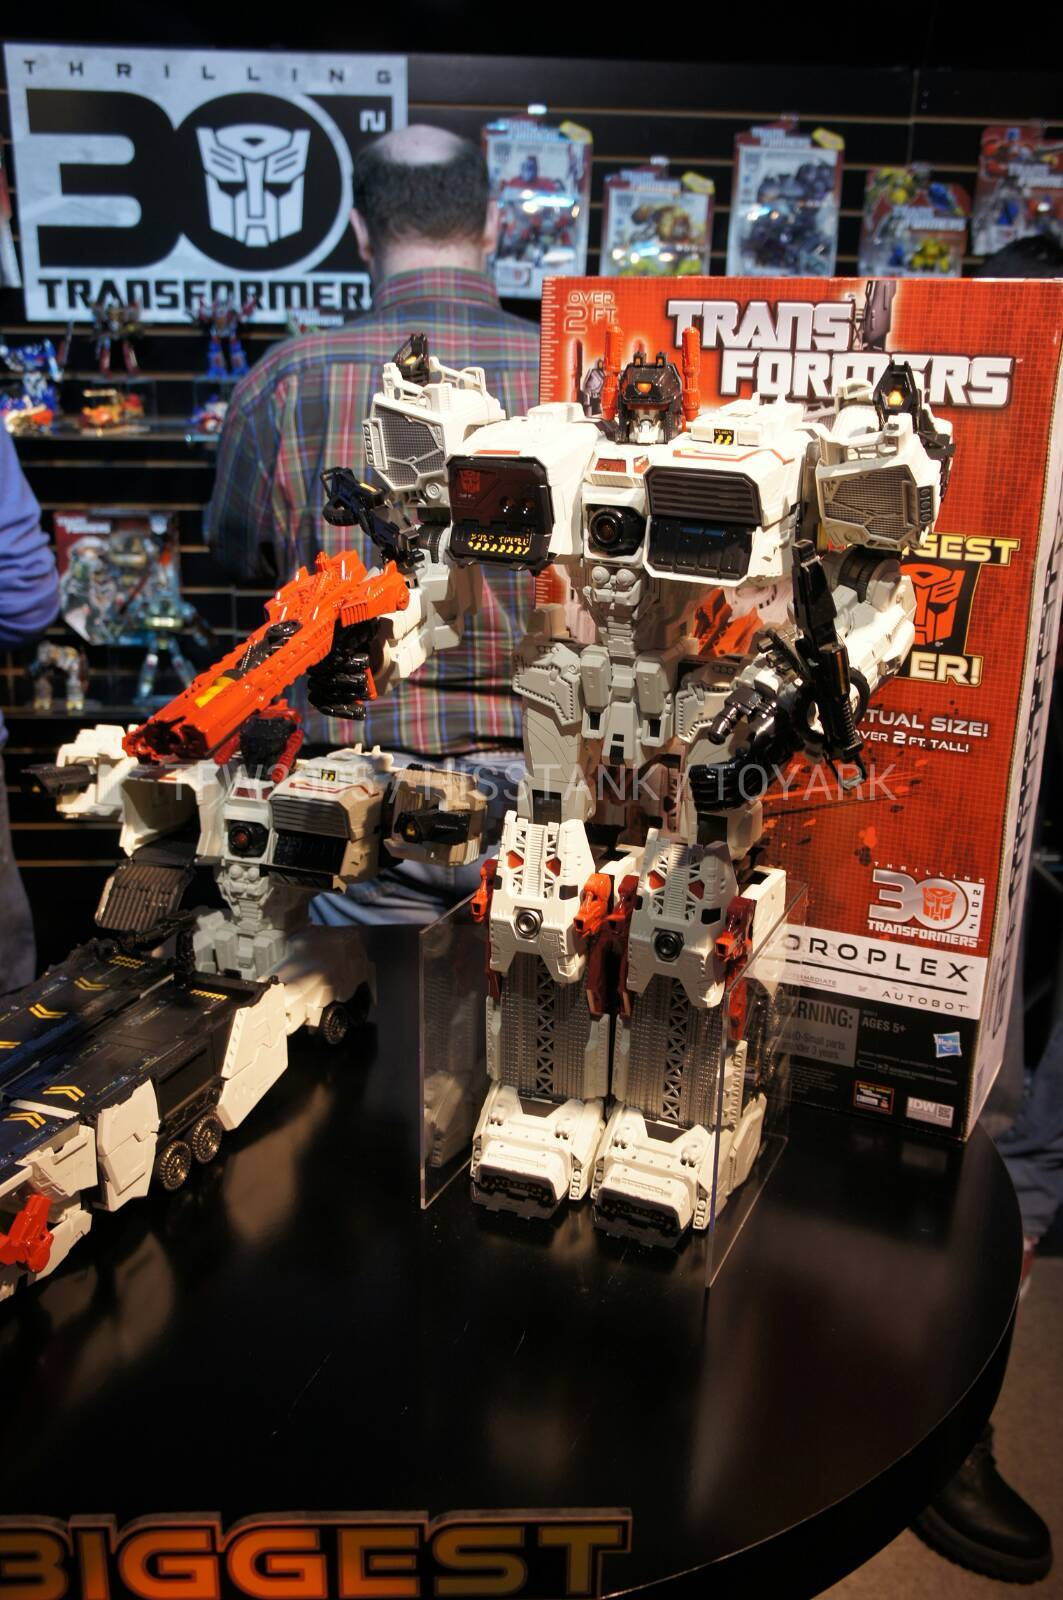 "Fall of Cybertron Metroplex Announced At Hasbro Toy Fair Event - Transformers News - TFW2005  Metroplex• Titan Class• 24"" Tall• Triple Changer• Fall of Cybertron Style• In Scale with Legends Class figures• Fall 2013 Release Date• Price: $125 (Estimated)"